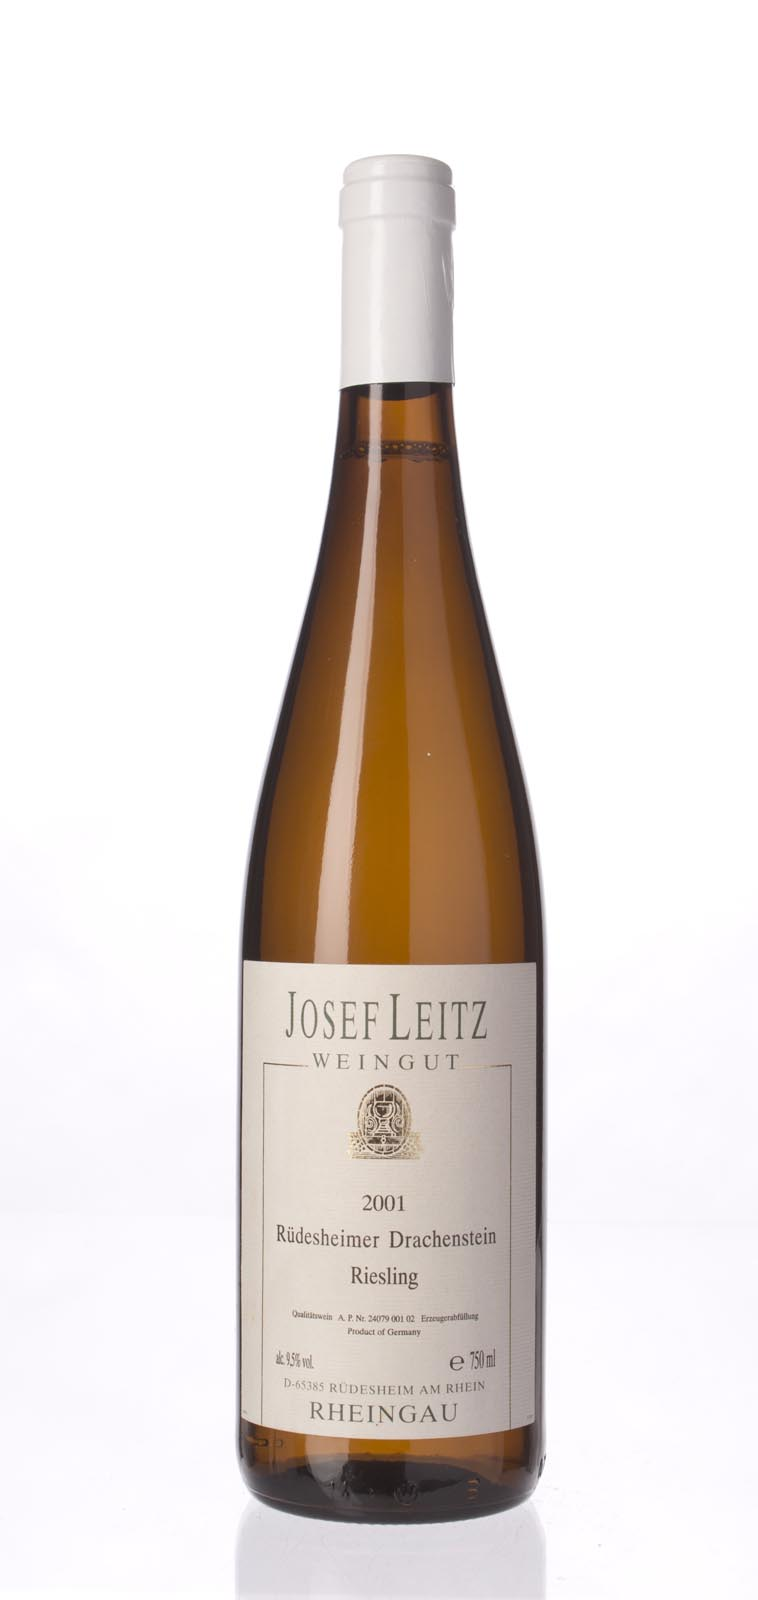 Josef Leitz Rudesheimer Drachenstein 2001, 750mL (ST**) from The BPW - Merchants of rare and fine wines.